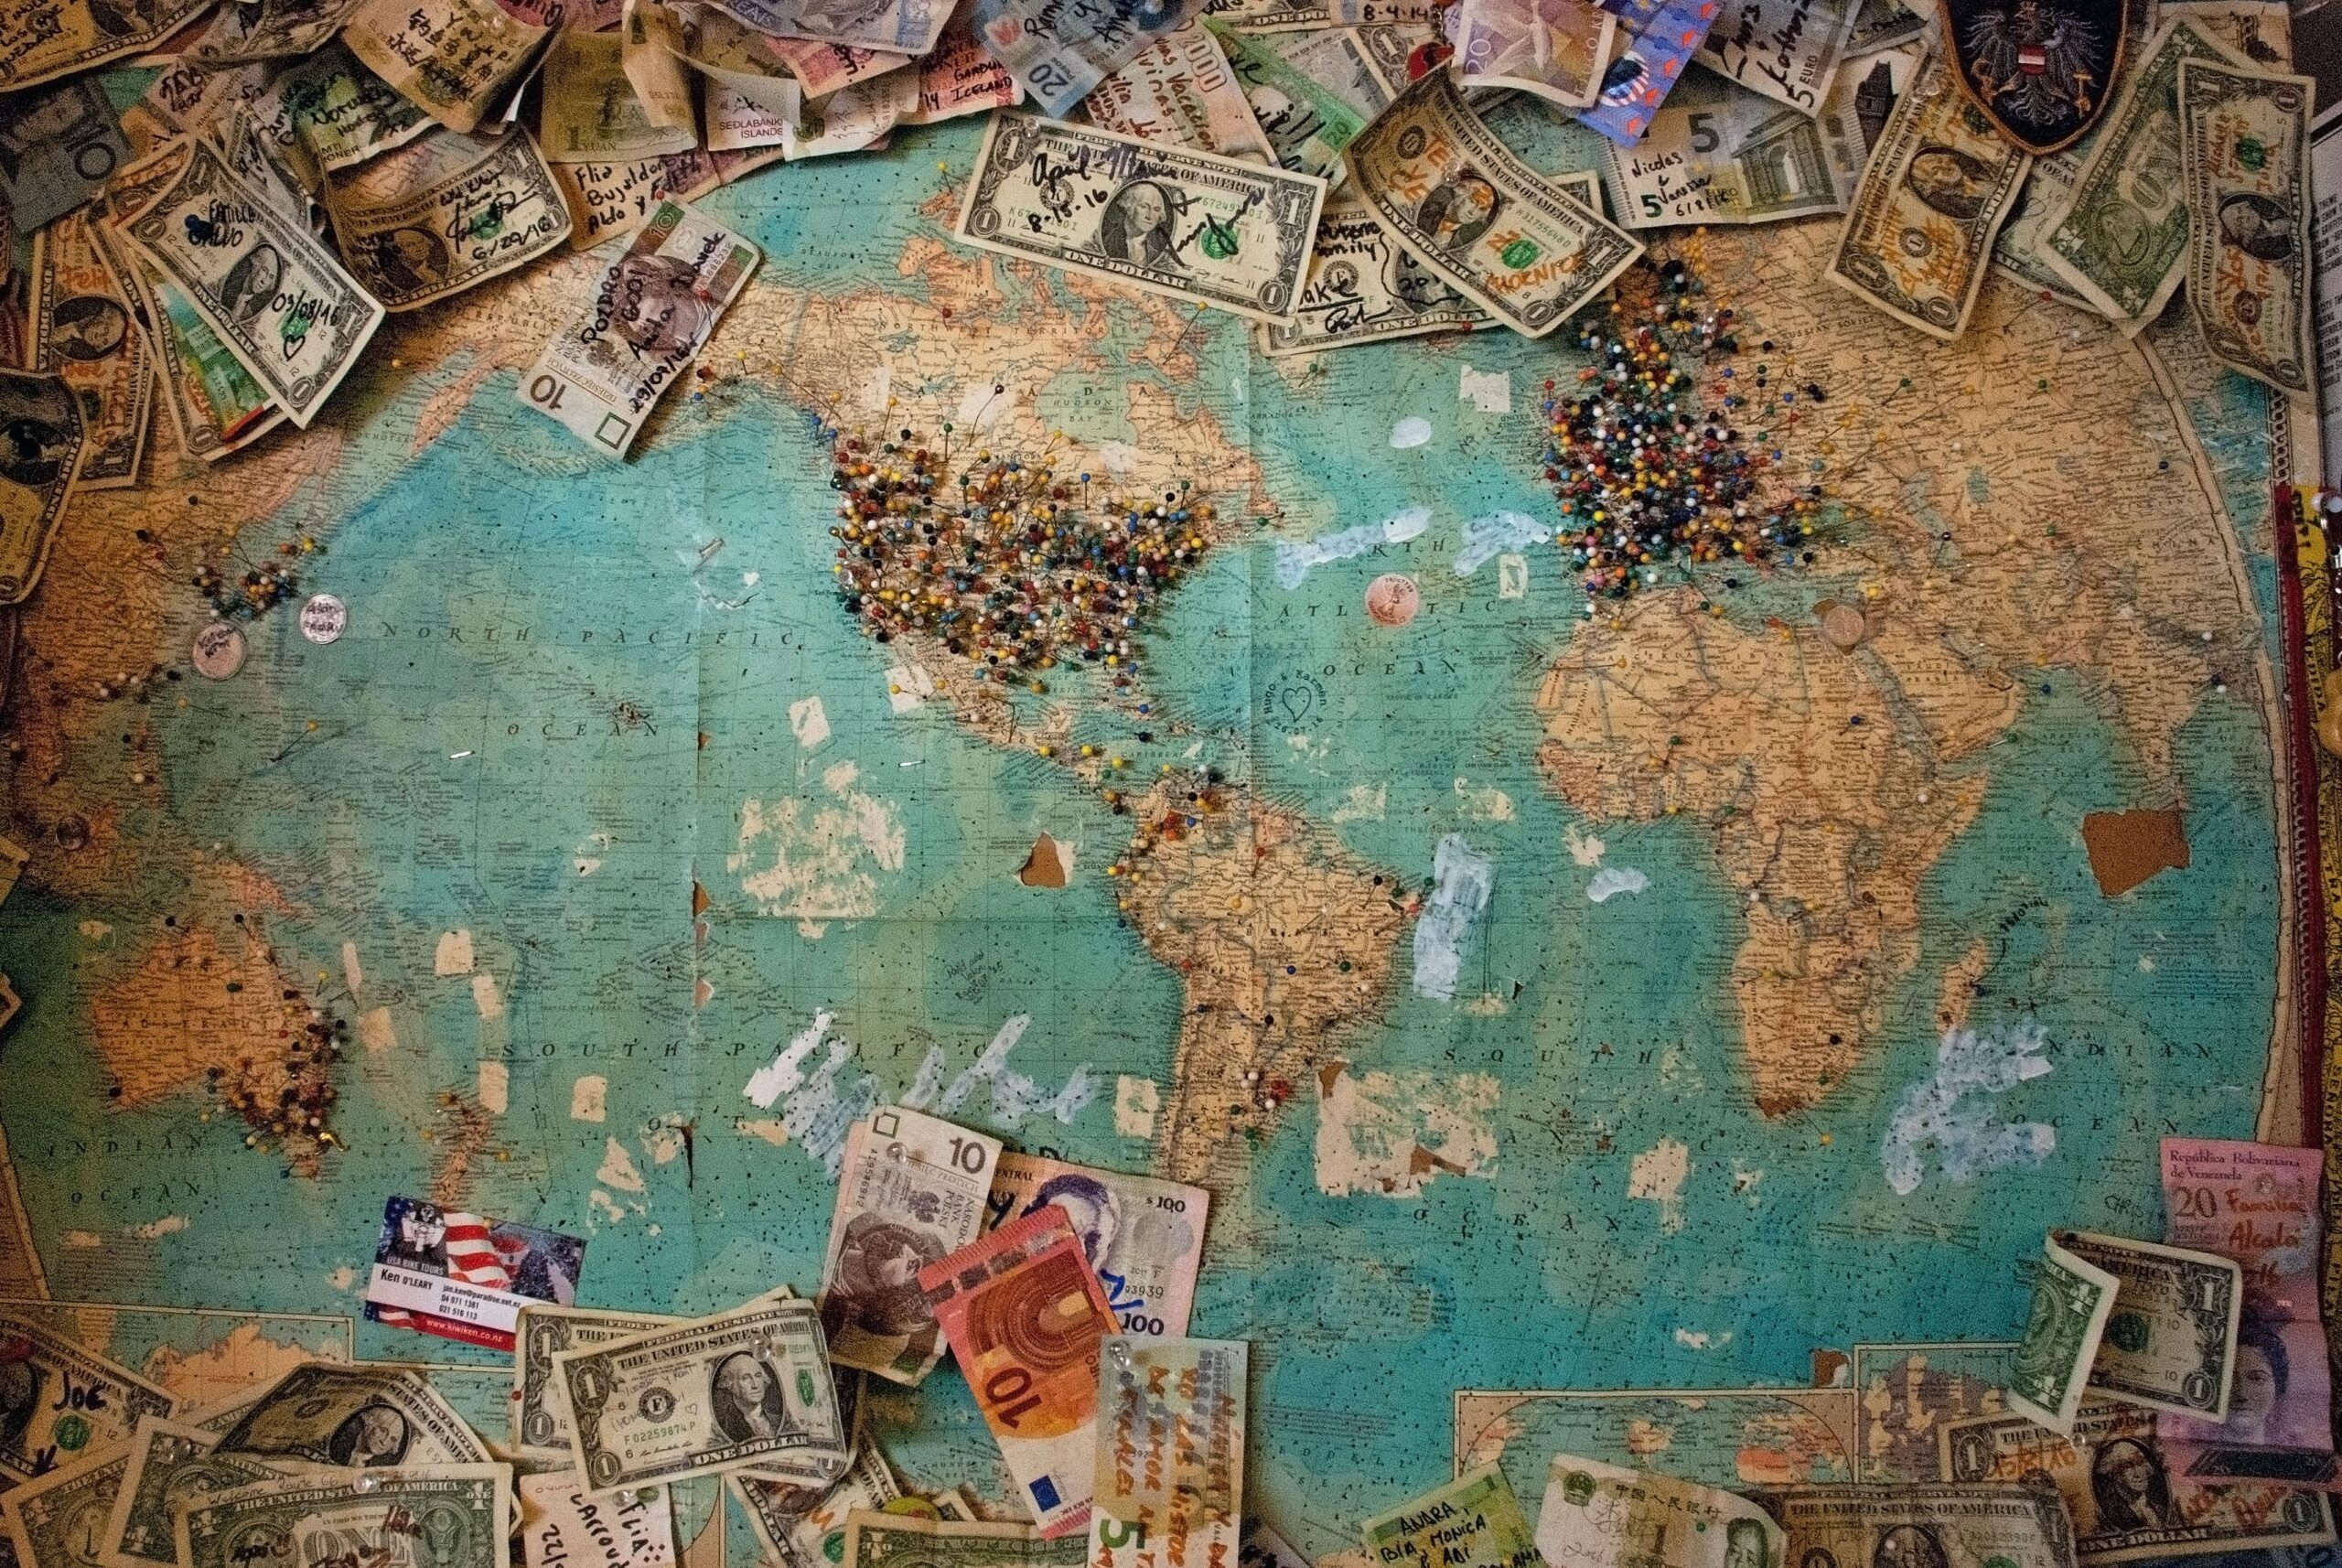 """Of the image the photographer said: """"During our road trip on highway 66 we stopped at a local shop and I spotted in a dark corner this old map with pins and currencies left by visitors from all over the planet."""""""